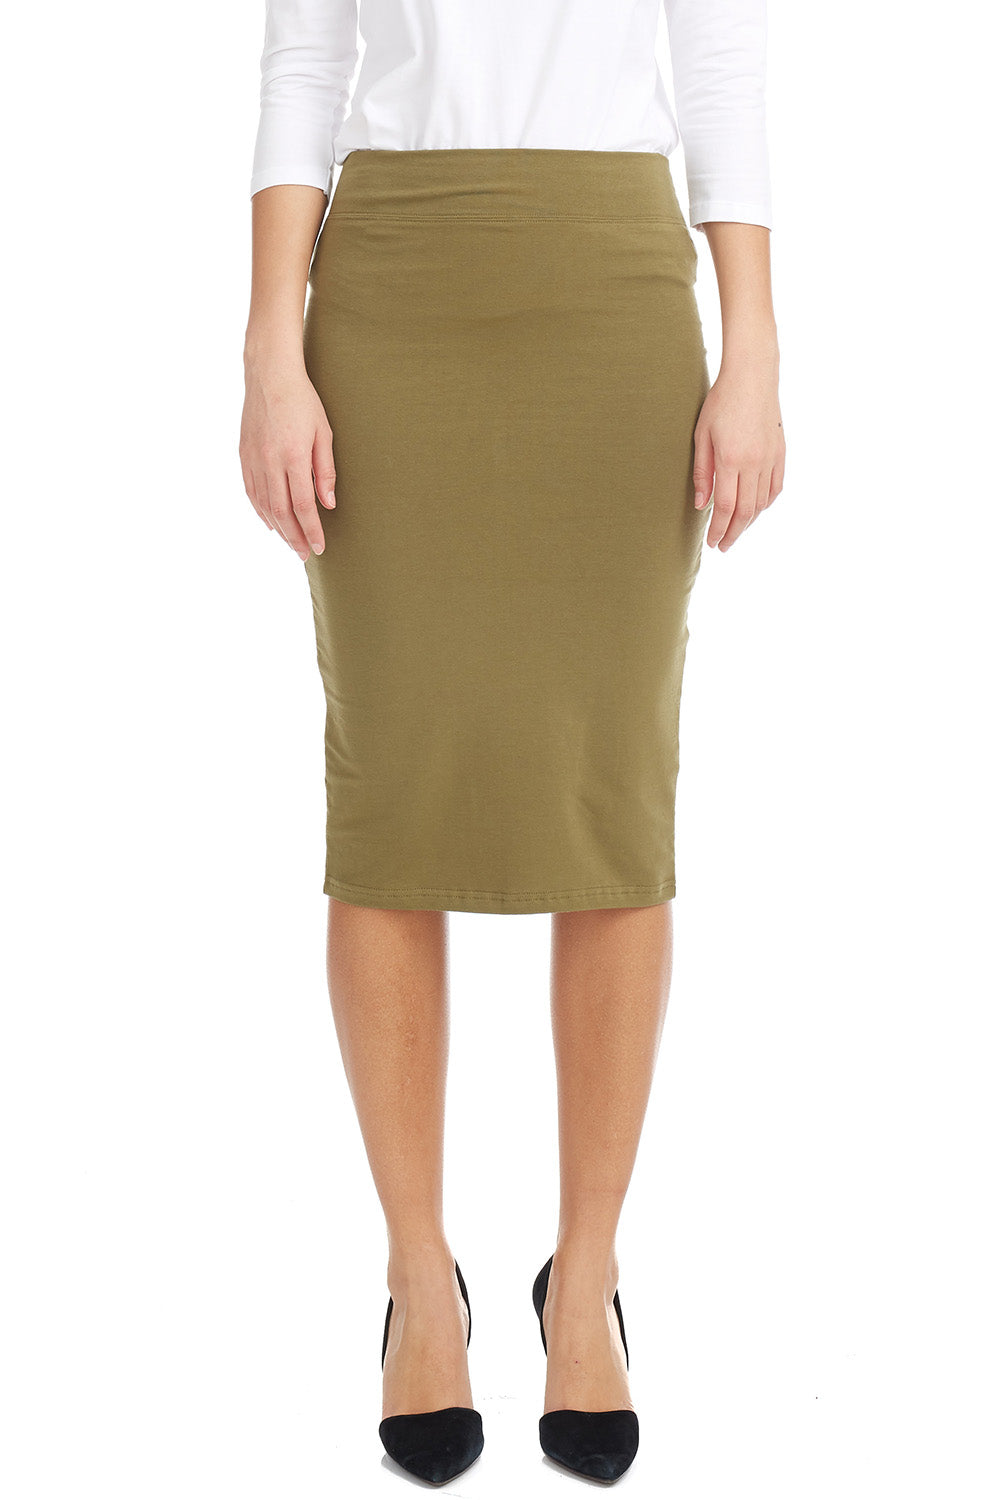 Esteez Shell Skirt - Cotton Spandex Lightweight Pencil skirt for WOMEN - ARMY GREEN